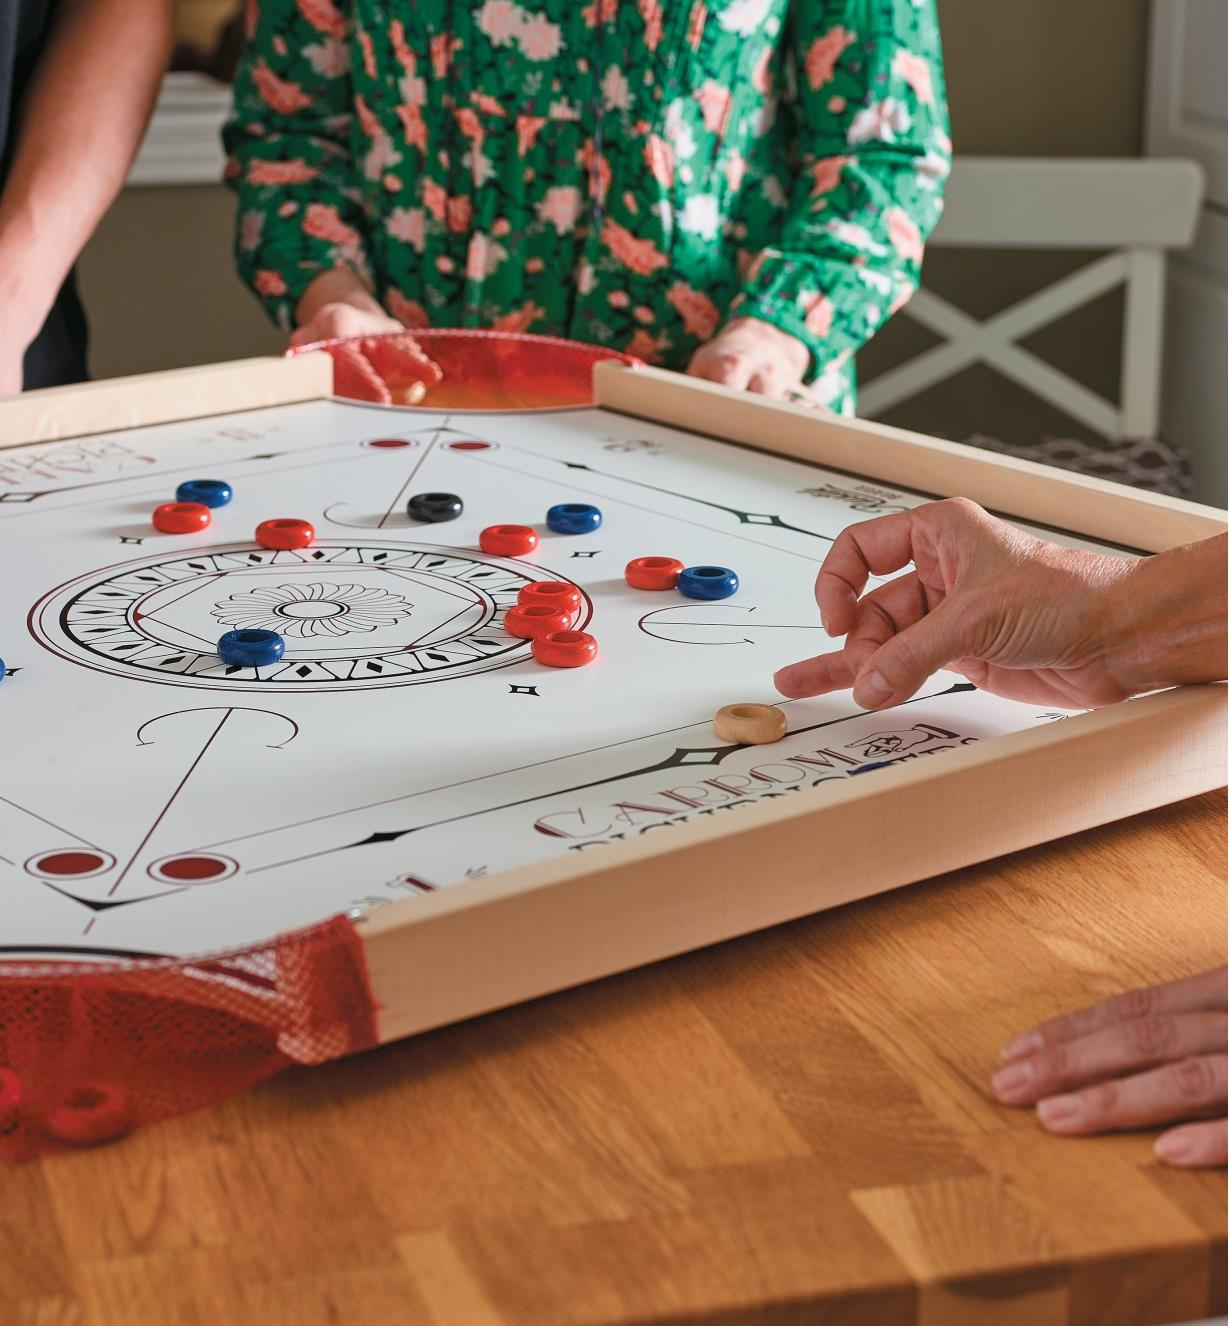 A player flicks the striker disc in a game of carrom